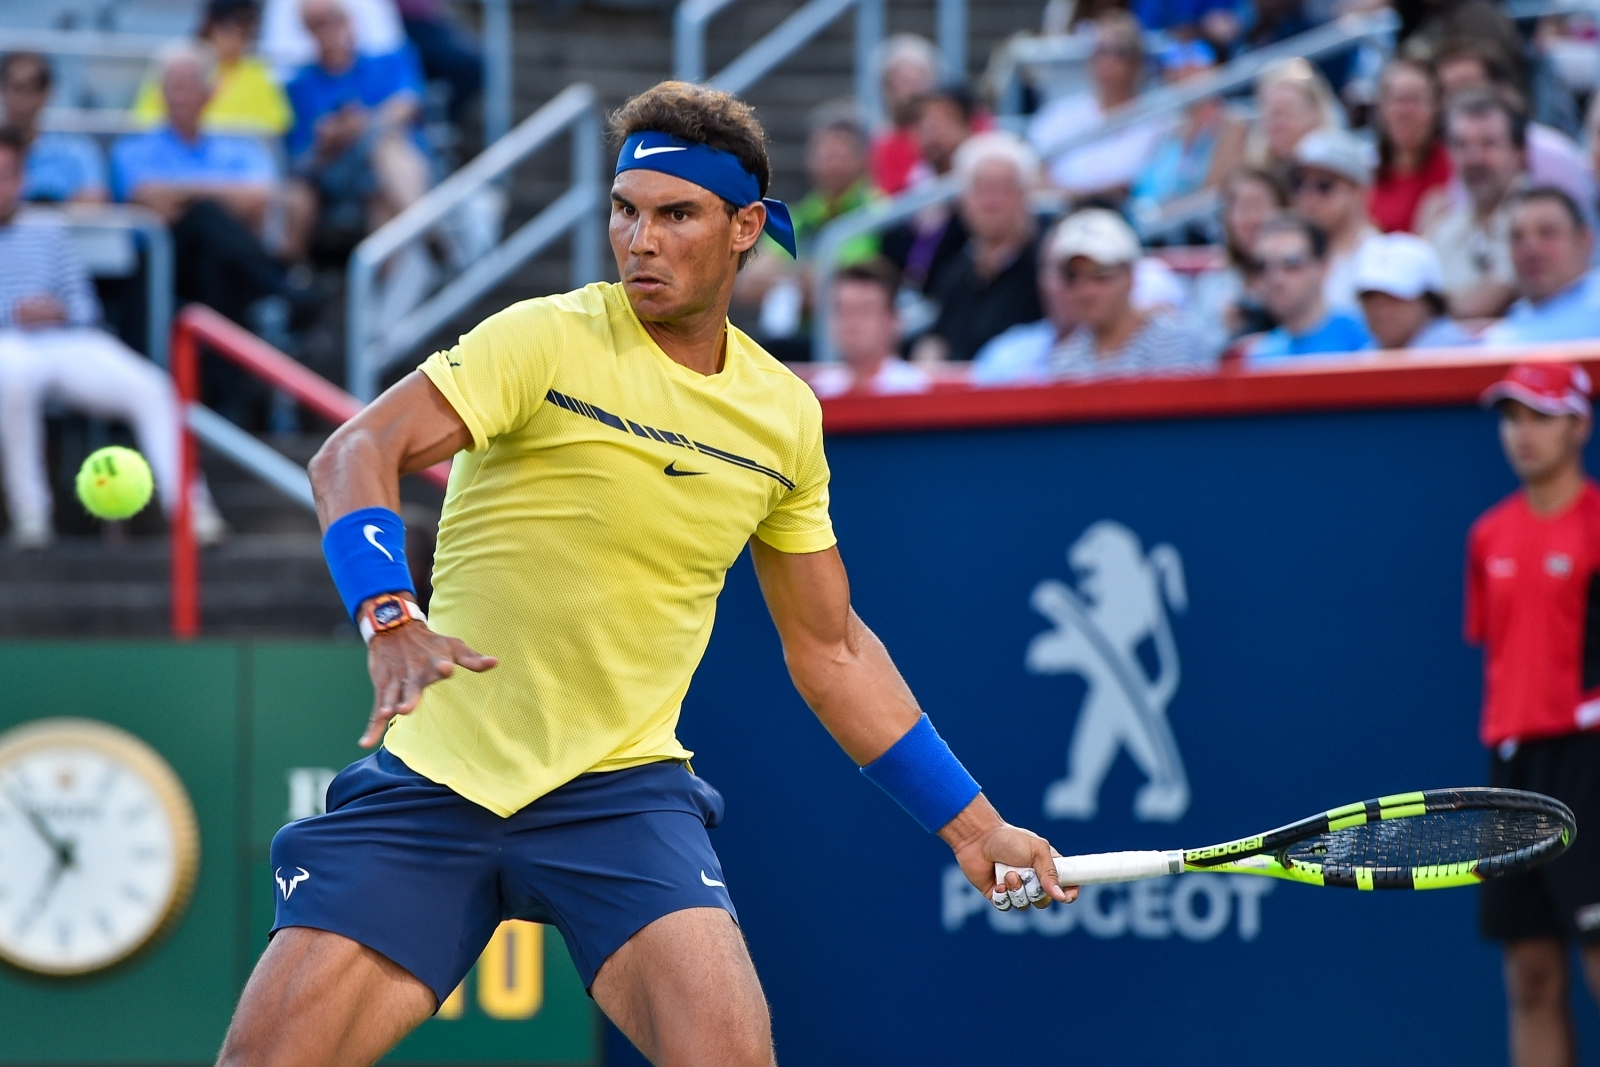 Rafael Nadal S Tennis Shorts Are Shrinking With Time The Top Seed Explains Why